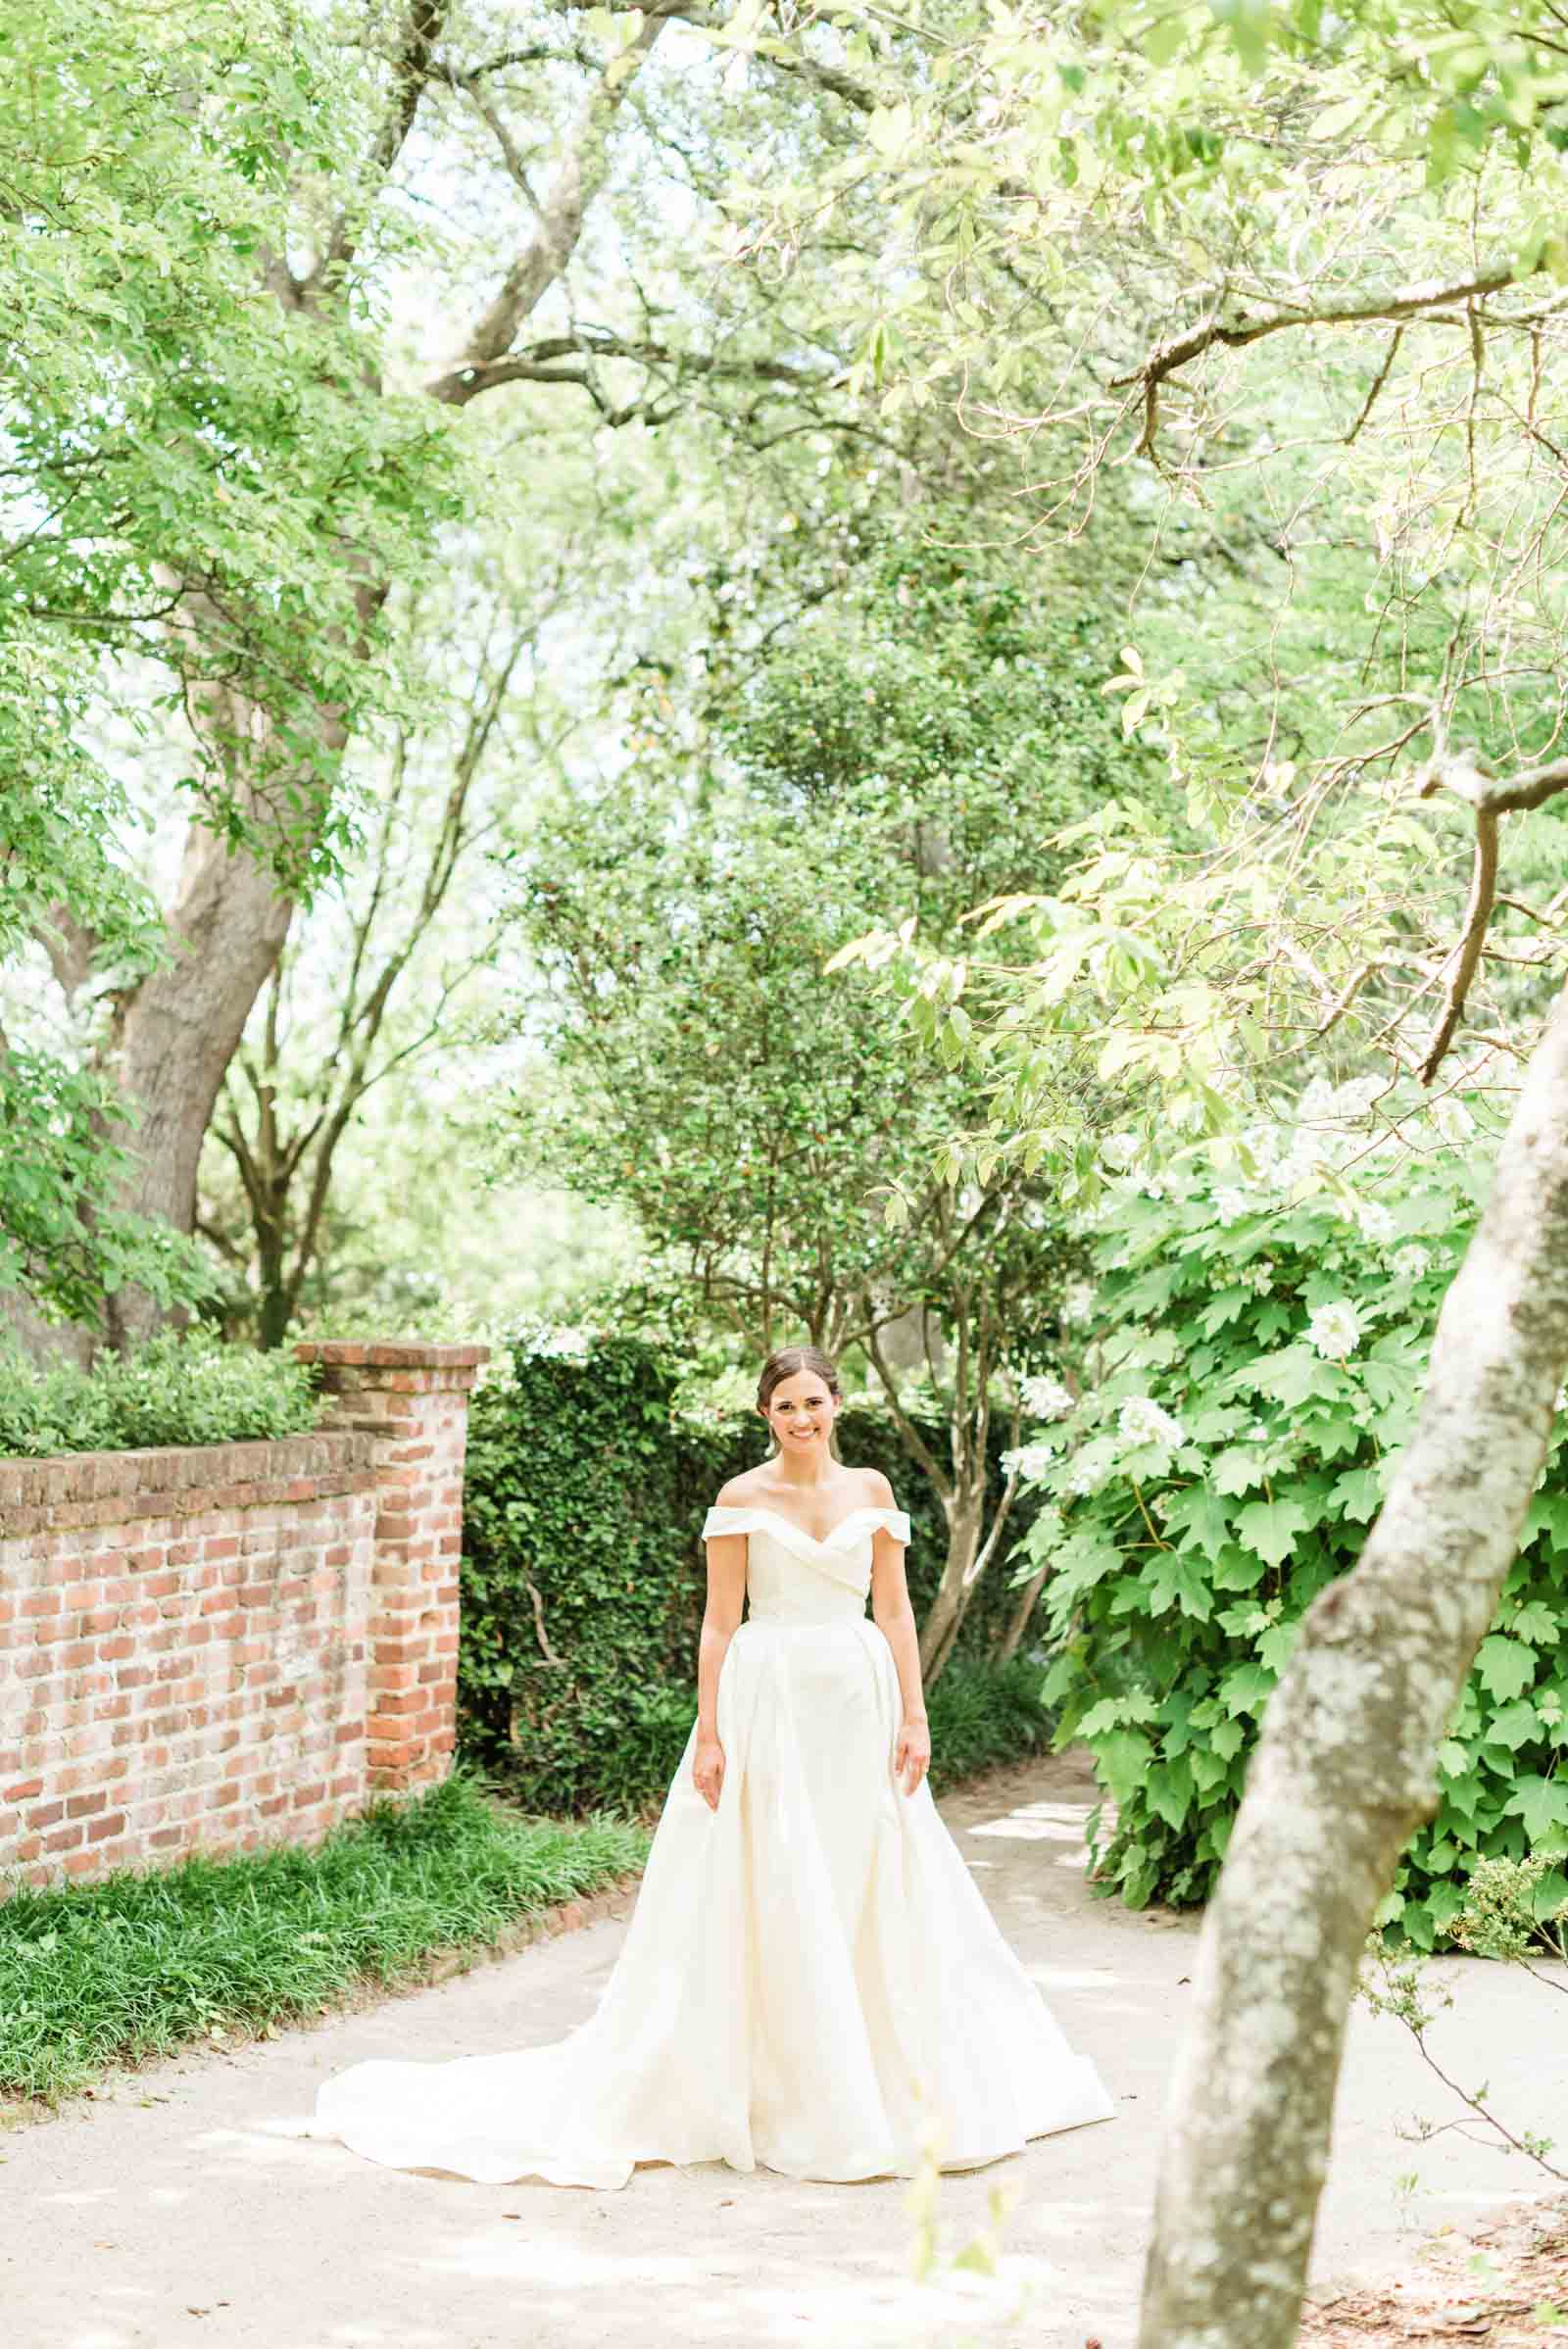 SC Lace House Bridal Session_Markie Walden Photography-13.jpg